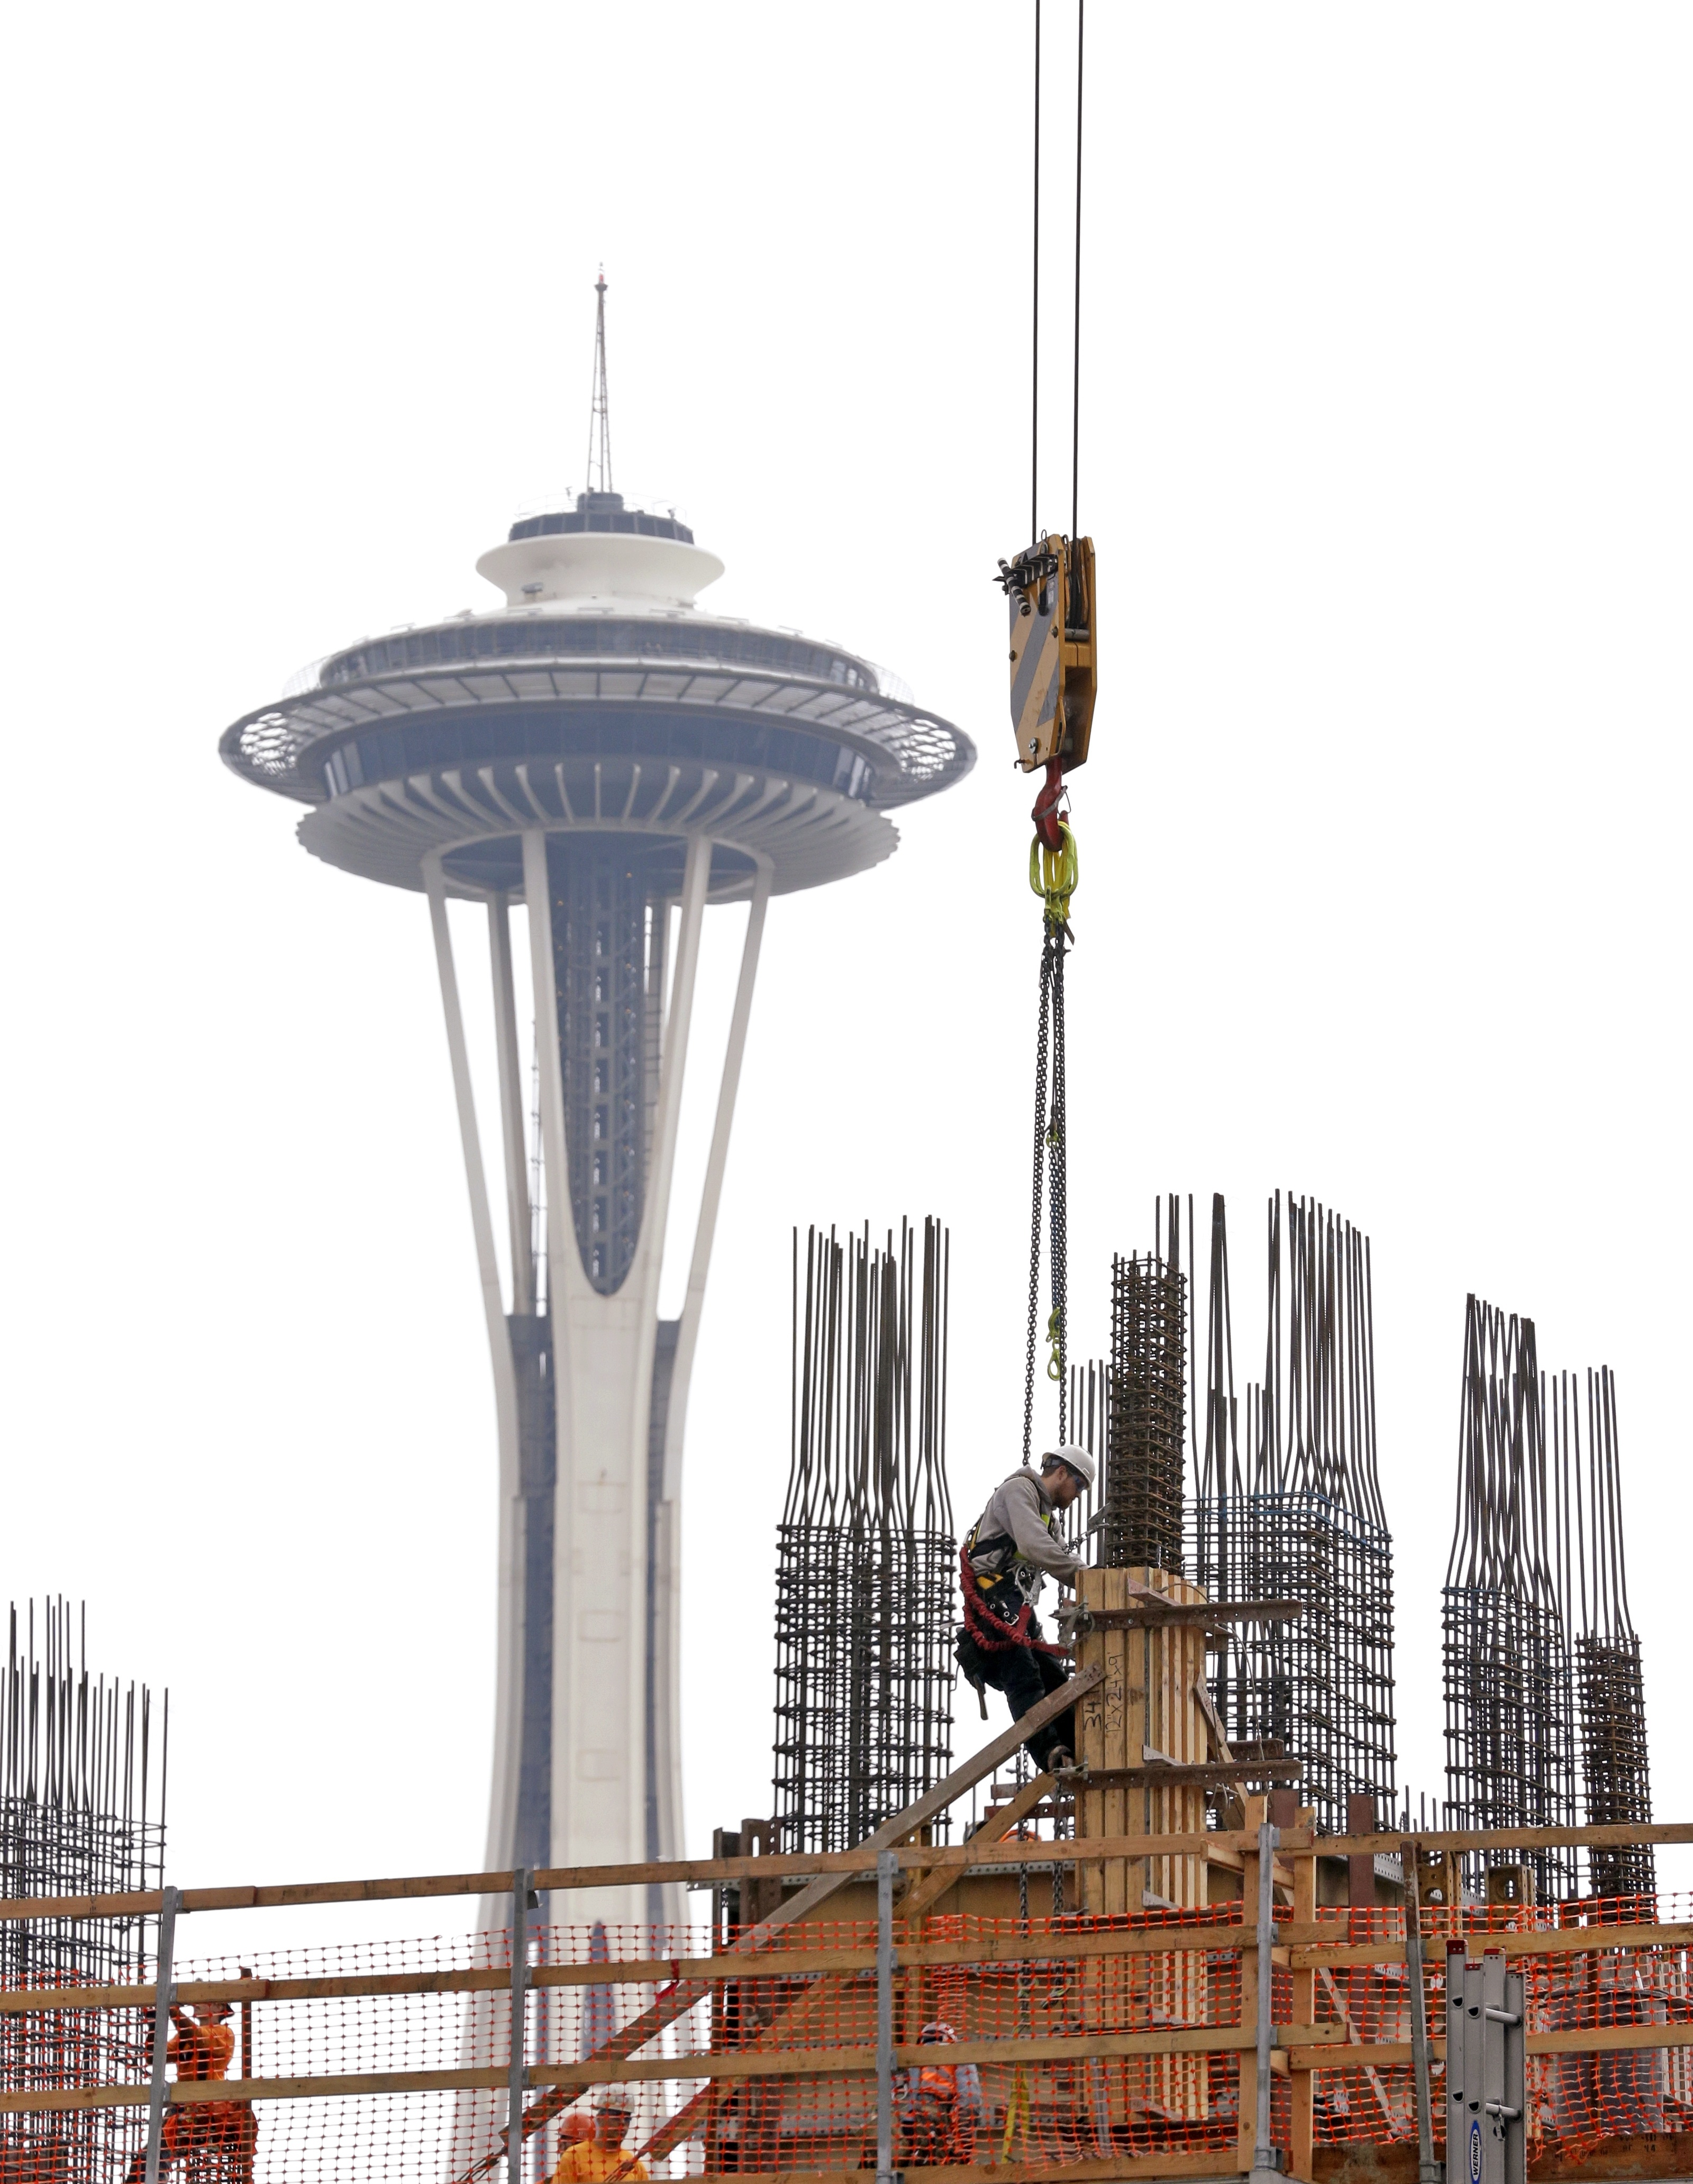 Amazon\'s growth worries some in Seattle | The Spokesman-Review